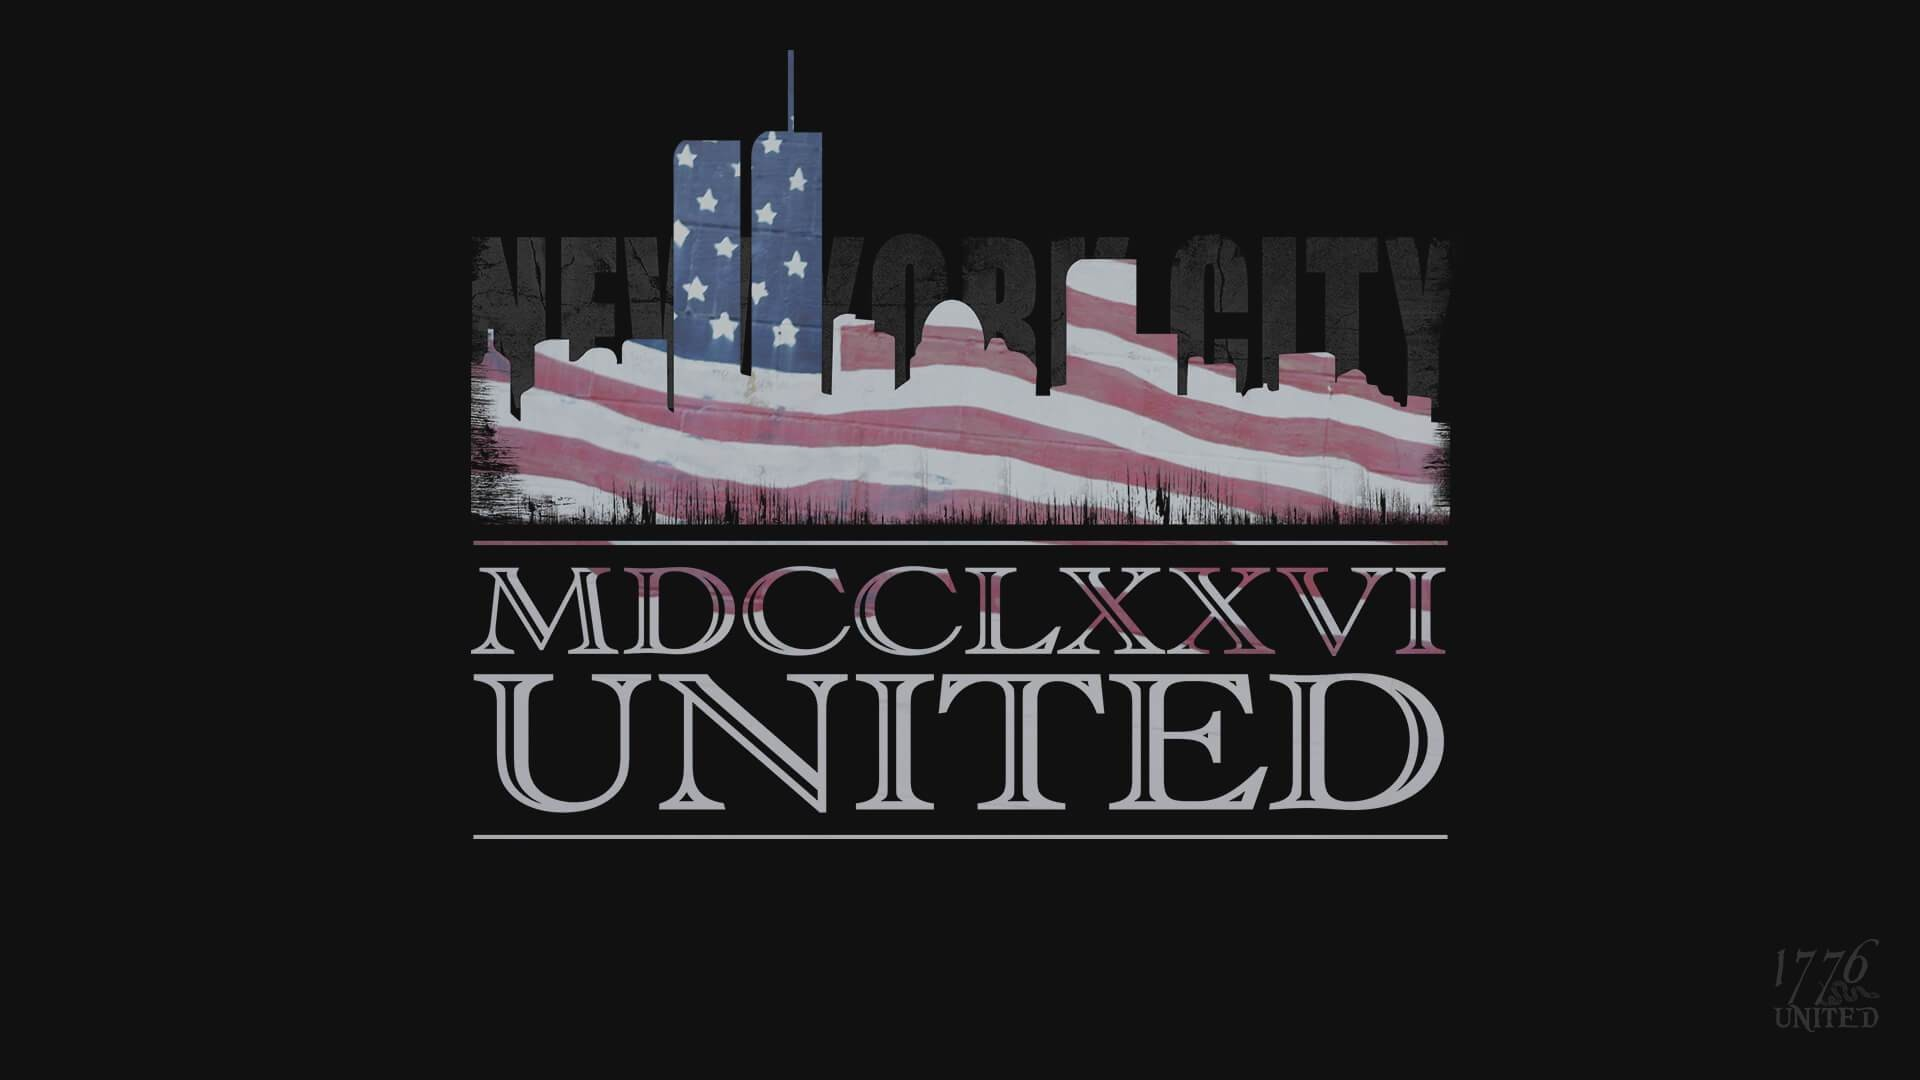 Res: 1920x1080, ... 1776 United Twin Towers New York City Wallpaper ...